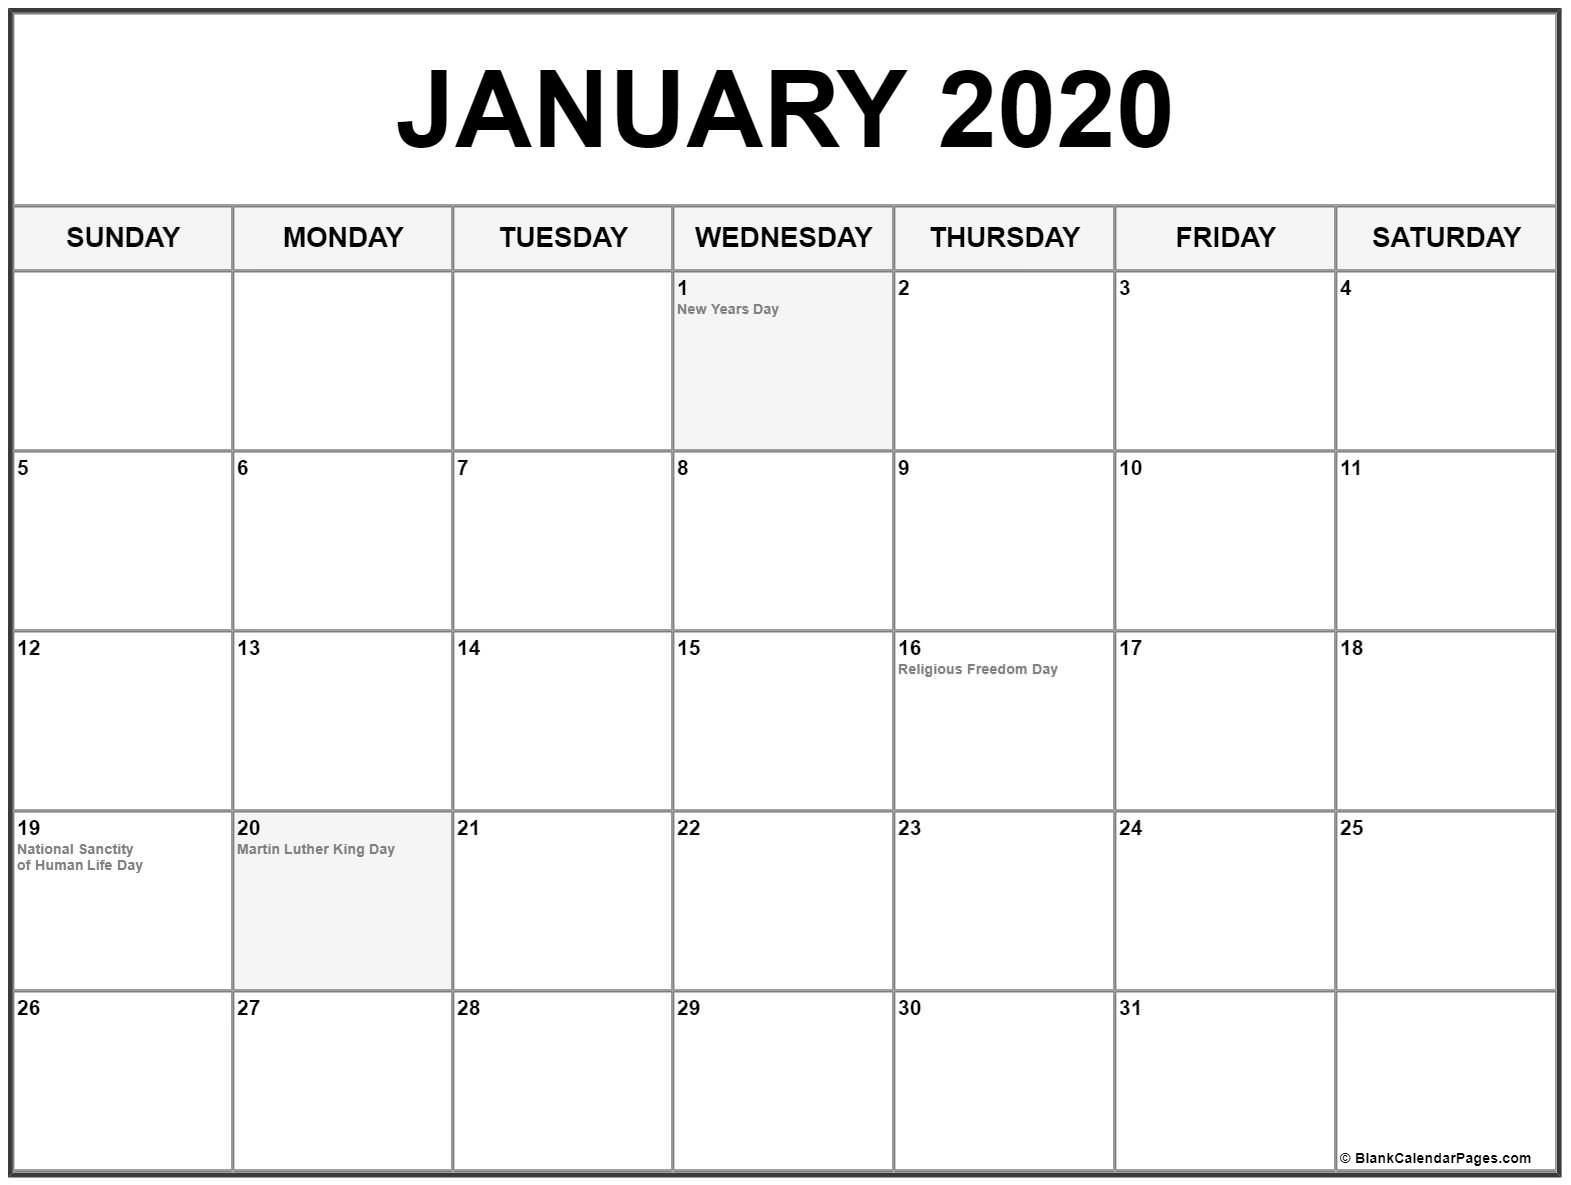 Collection Of January 2020 Calendars With Holidays Perky Printable Calendar 2020 Of Ridiculous Holidays